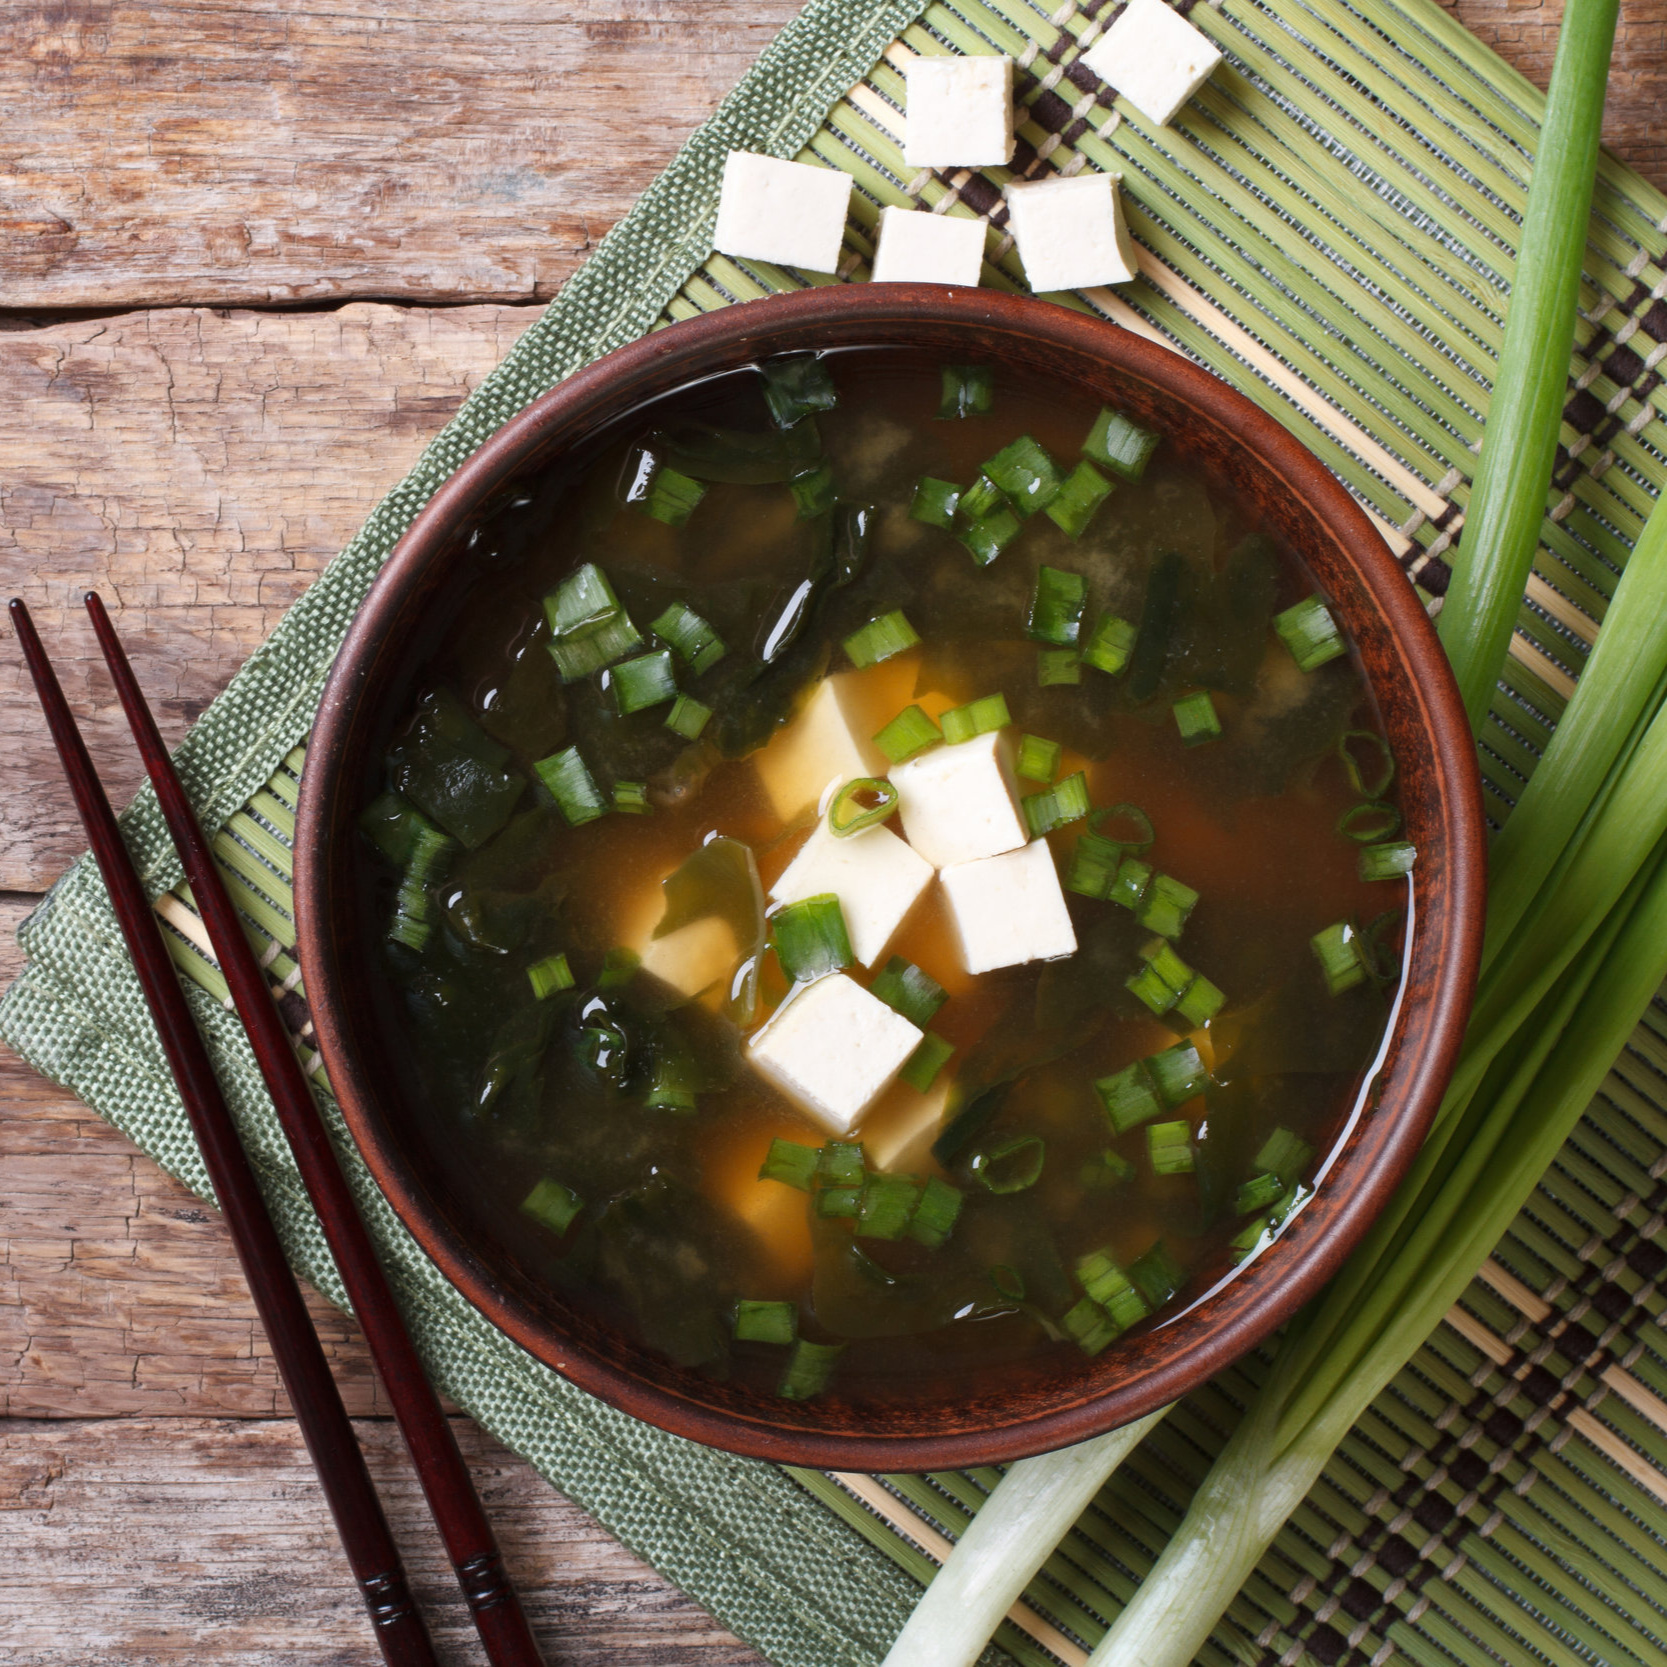 About Macrobiotics - What are Macrobiotics? The simplest way to put it is that it's a universal way of health and longevity that is best known for its dietary approach which focuses on eating whole grains, beans, fresh vegetables and fruits, and sea vegetables…which are high in minerals.This dietary approach has been used to achieve optimal health and well-being, and in many instances, cure a wide range of illnesses by making adjustments in our eating habits. Unlike 'modern' Western medicine, which focuses on the symptom, Macrobiotics focuses on the underlying cause of the illness.